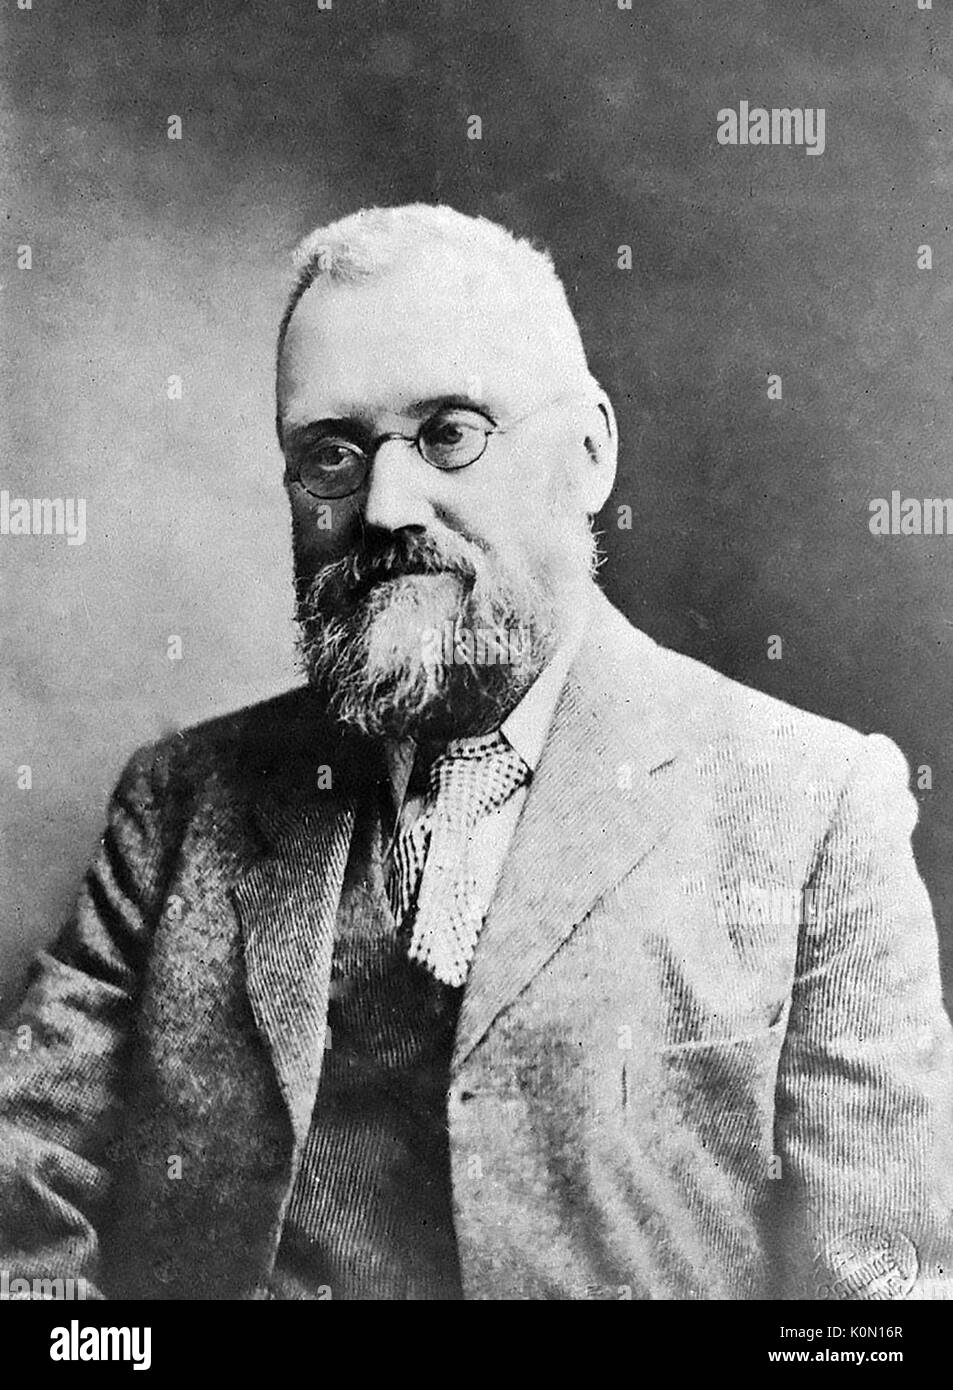 WILLIAM FARRER (1845-1906) Australian agronomist who developed the Federation strain of wheat - Stock Image